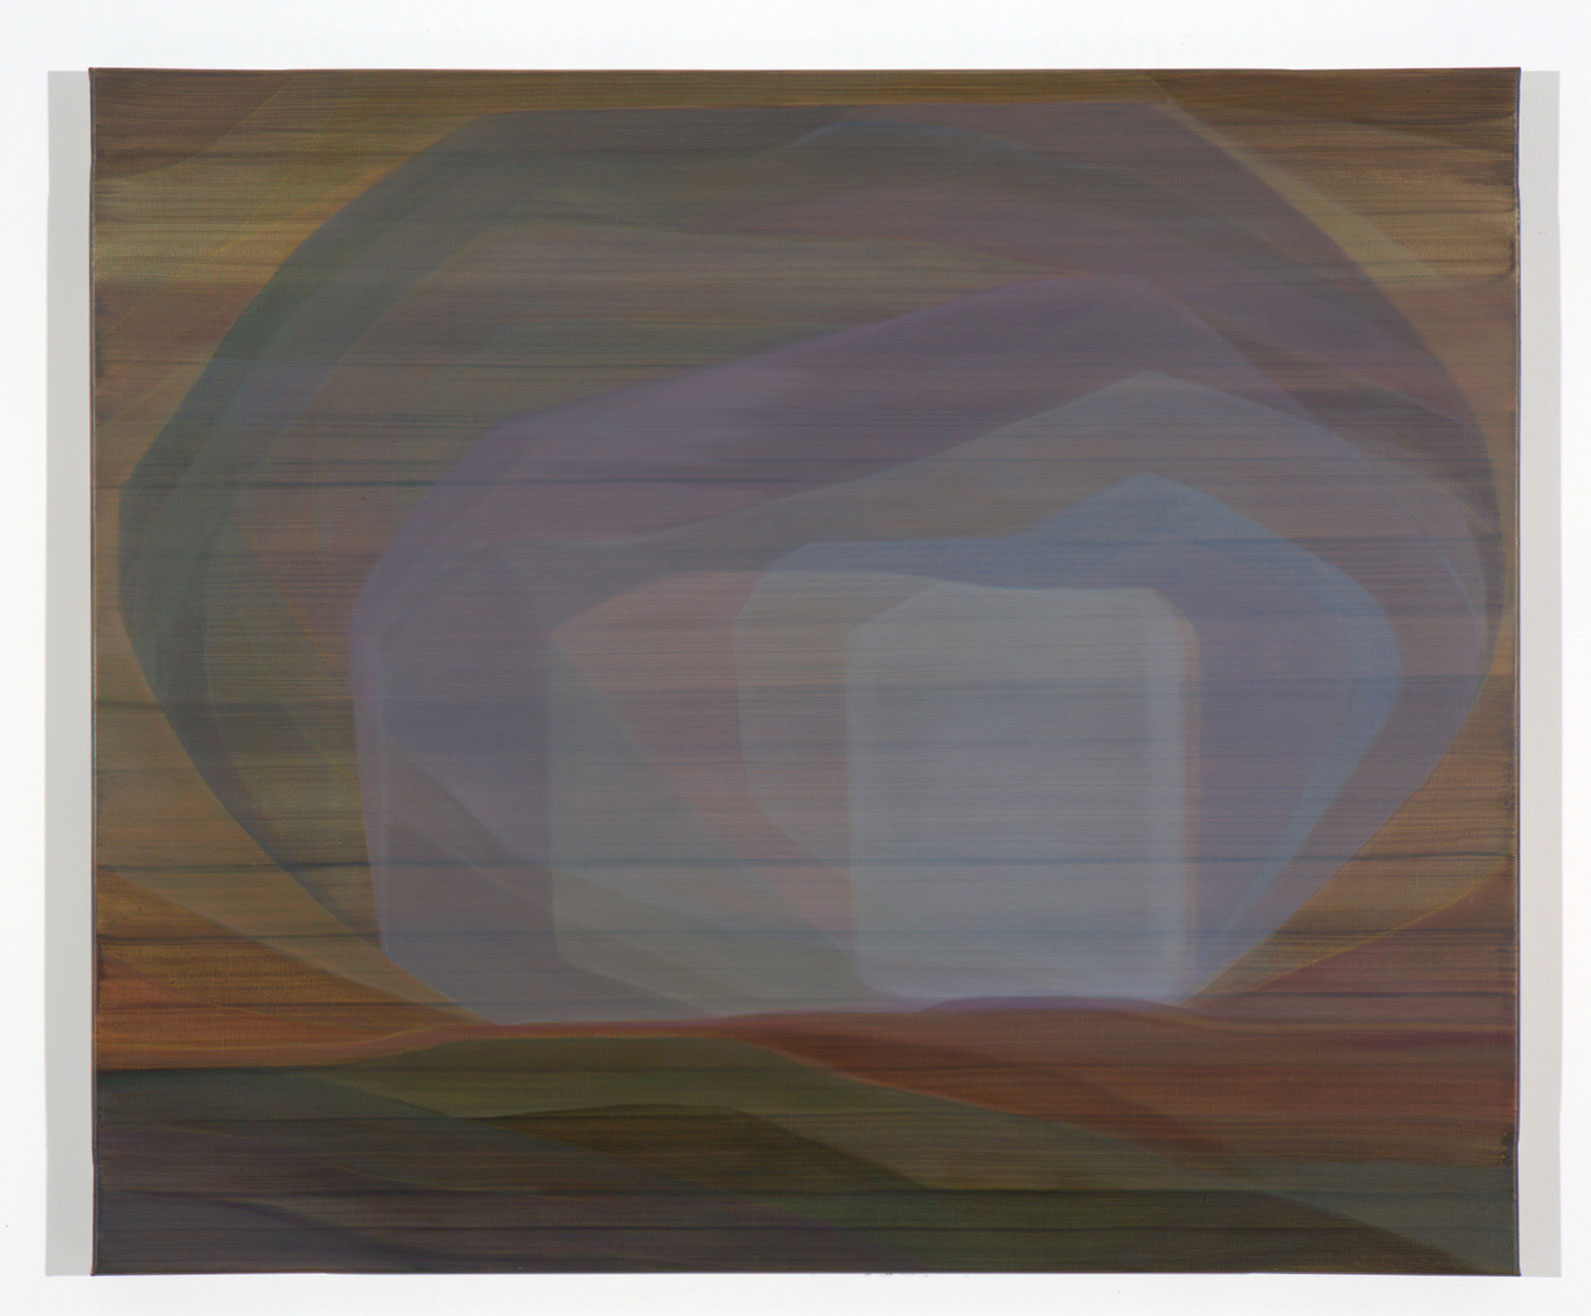 JOHN YOUNG   None Living Knows #2  2017 oil on canvas 86.5 x 102.5 cm